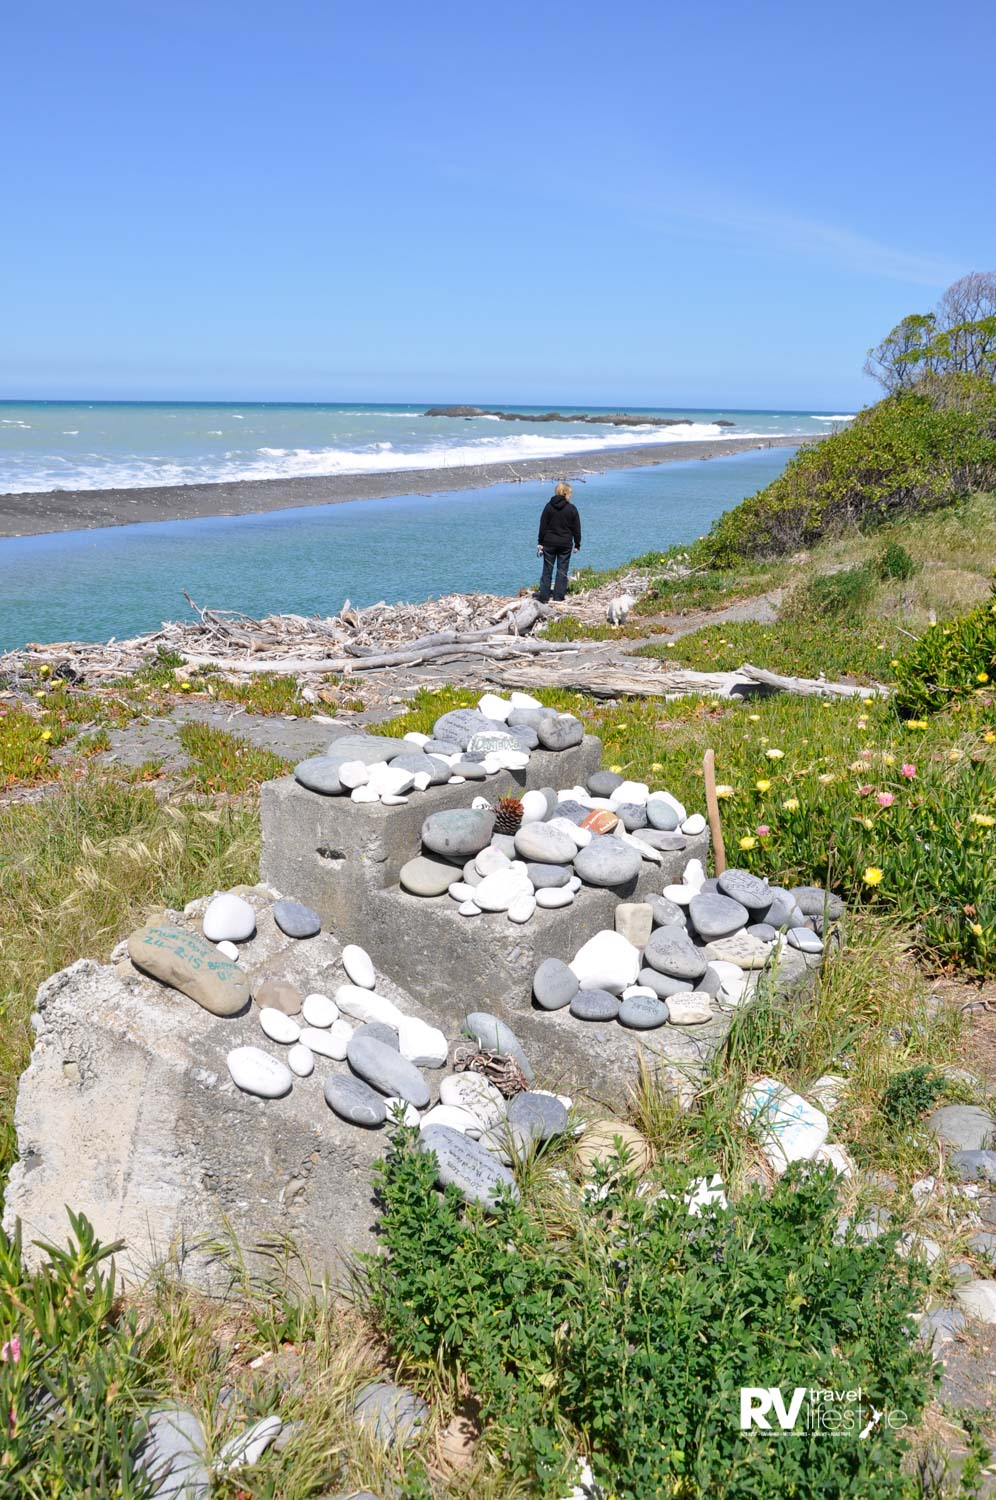 Kekerengu beach at the Store pre earthquake Nov 2016 - we stayed the night here on our way south just a week before the November quake. The rocks on the concrete steps have messages written on them by tourists - but today they have fallen to the ground